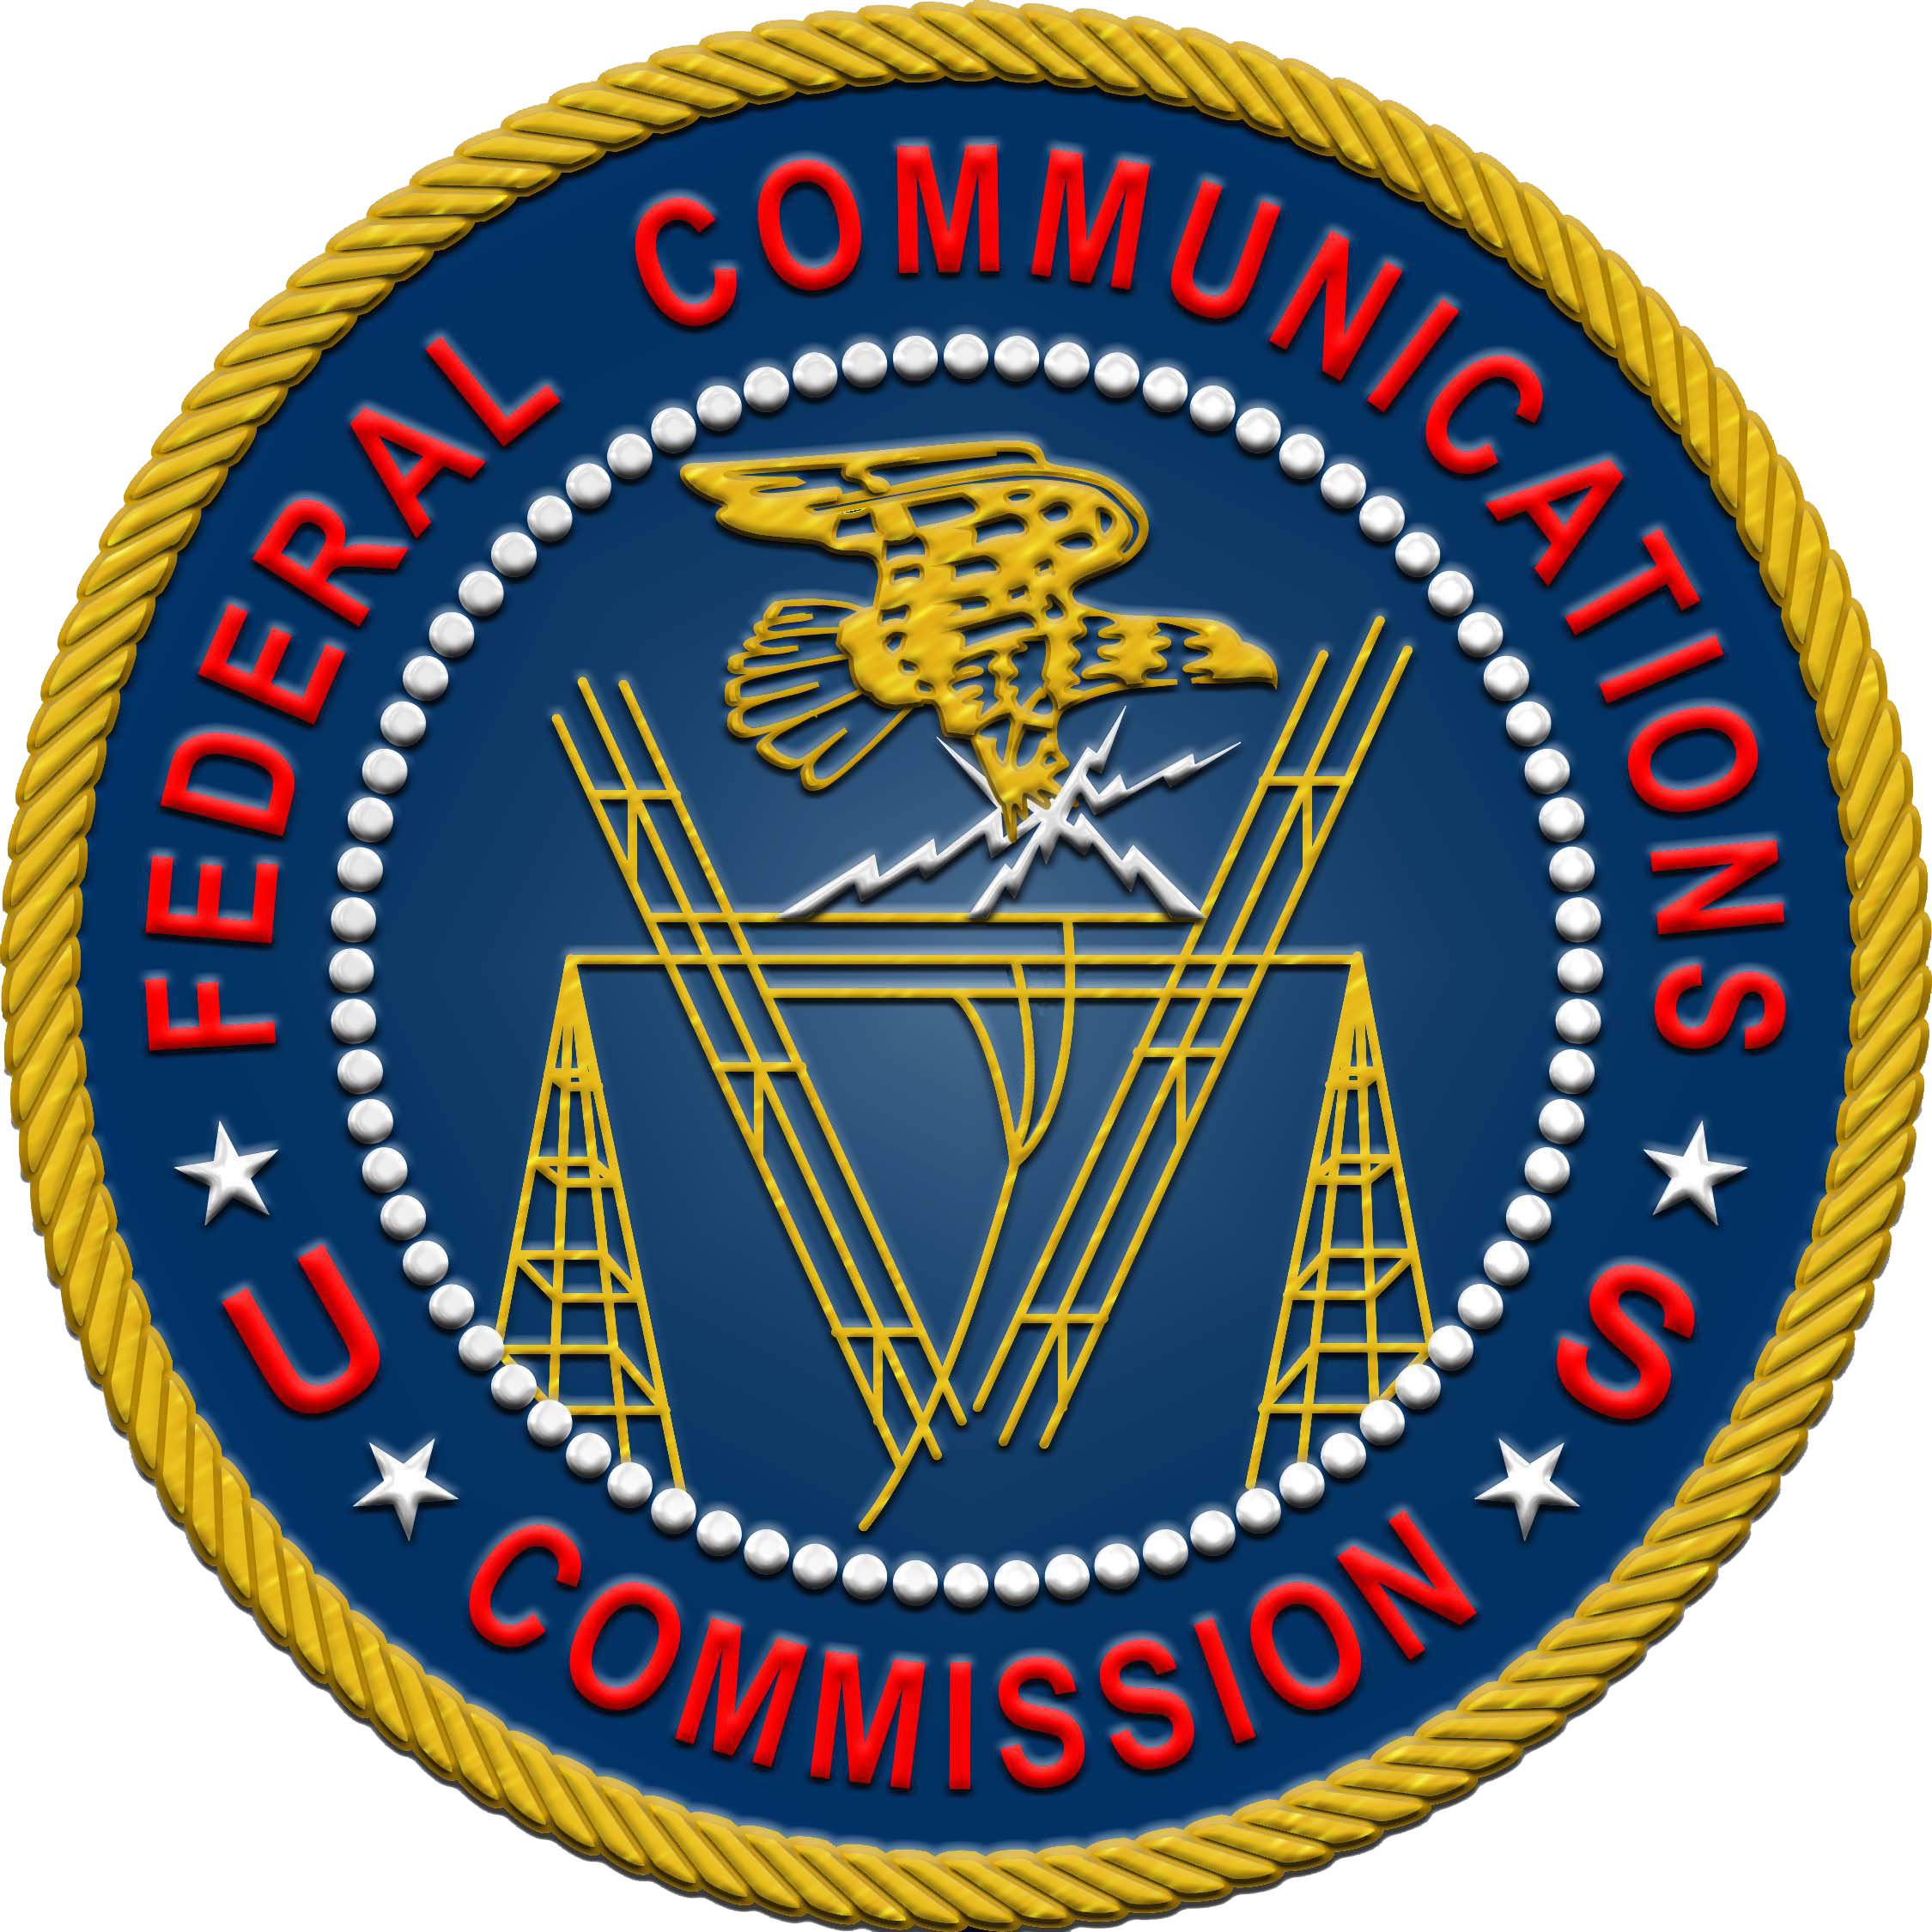 """research papers on federal communication commission The federal communications commission (in this chapter referred to as the  used in connection with technical research activities),  to accept """"reasonable honorarium or compensation"""" for """"the presentation or delivery of publications or papers."""